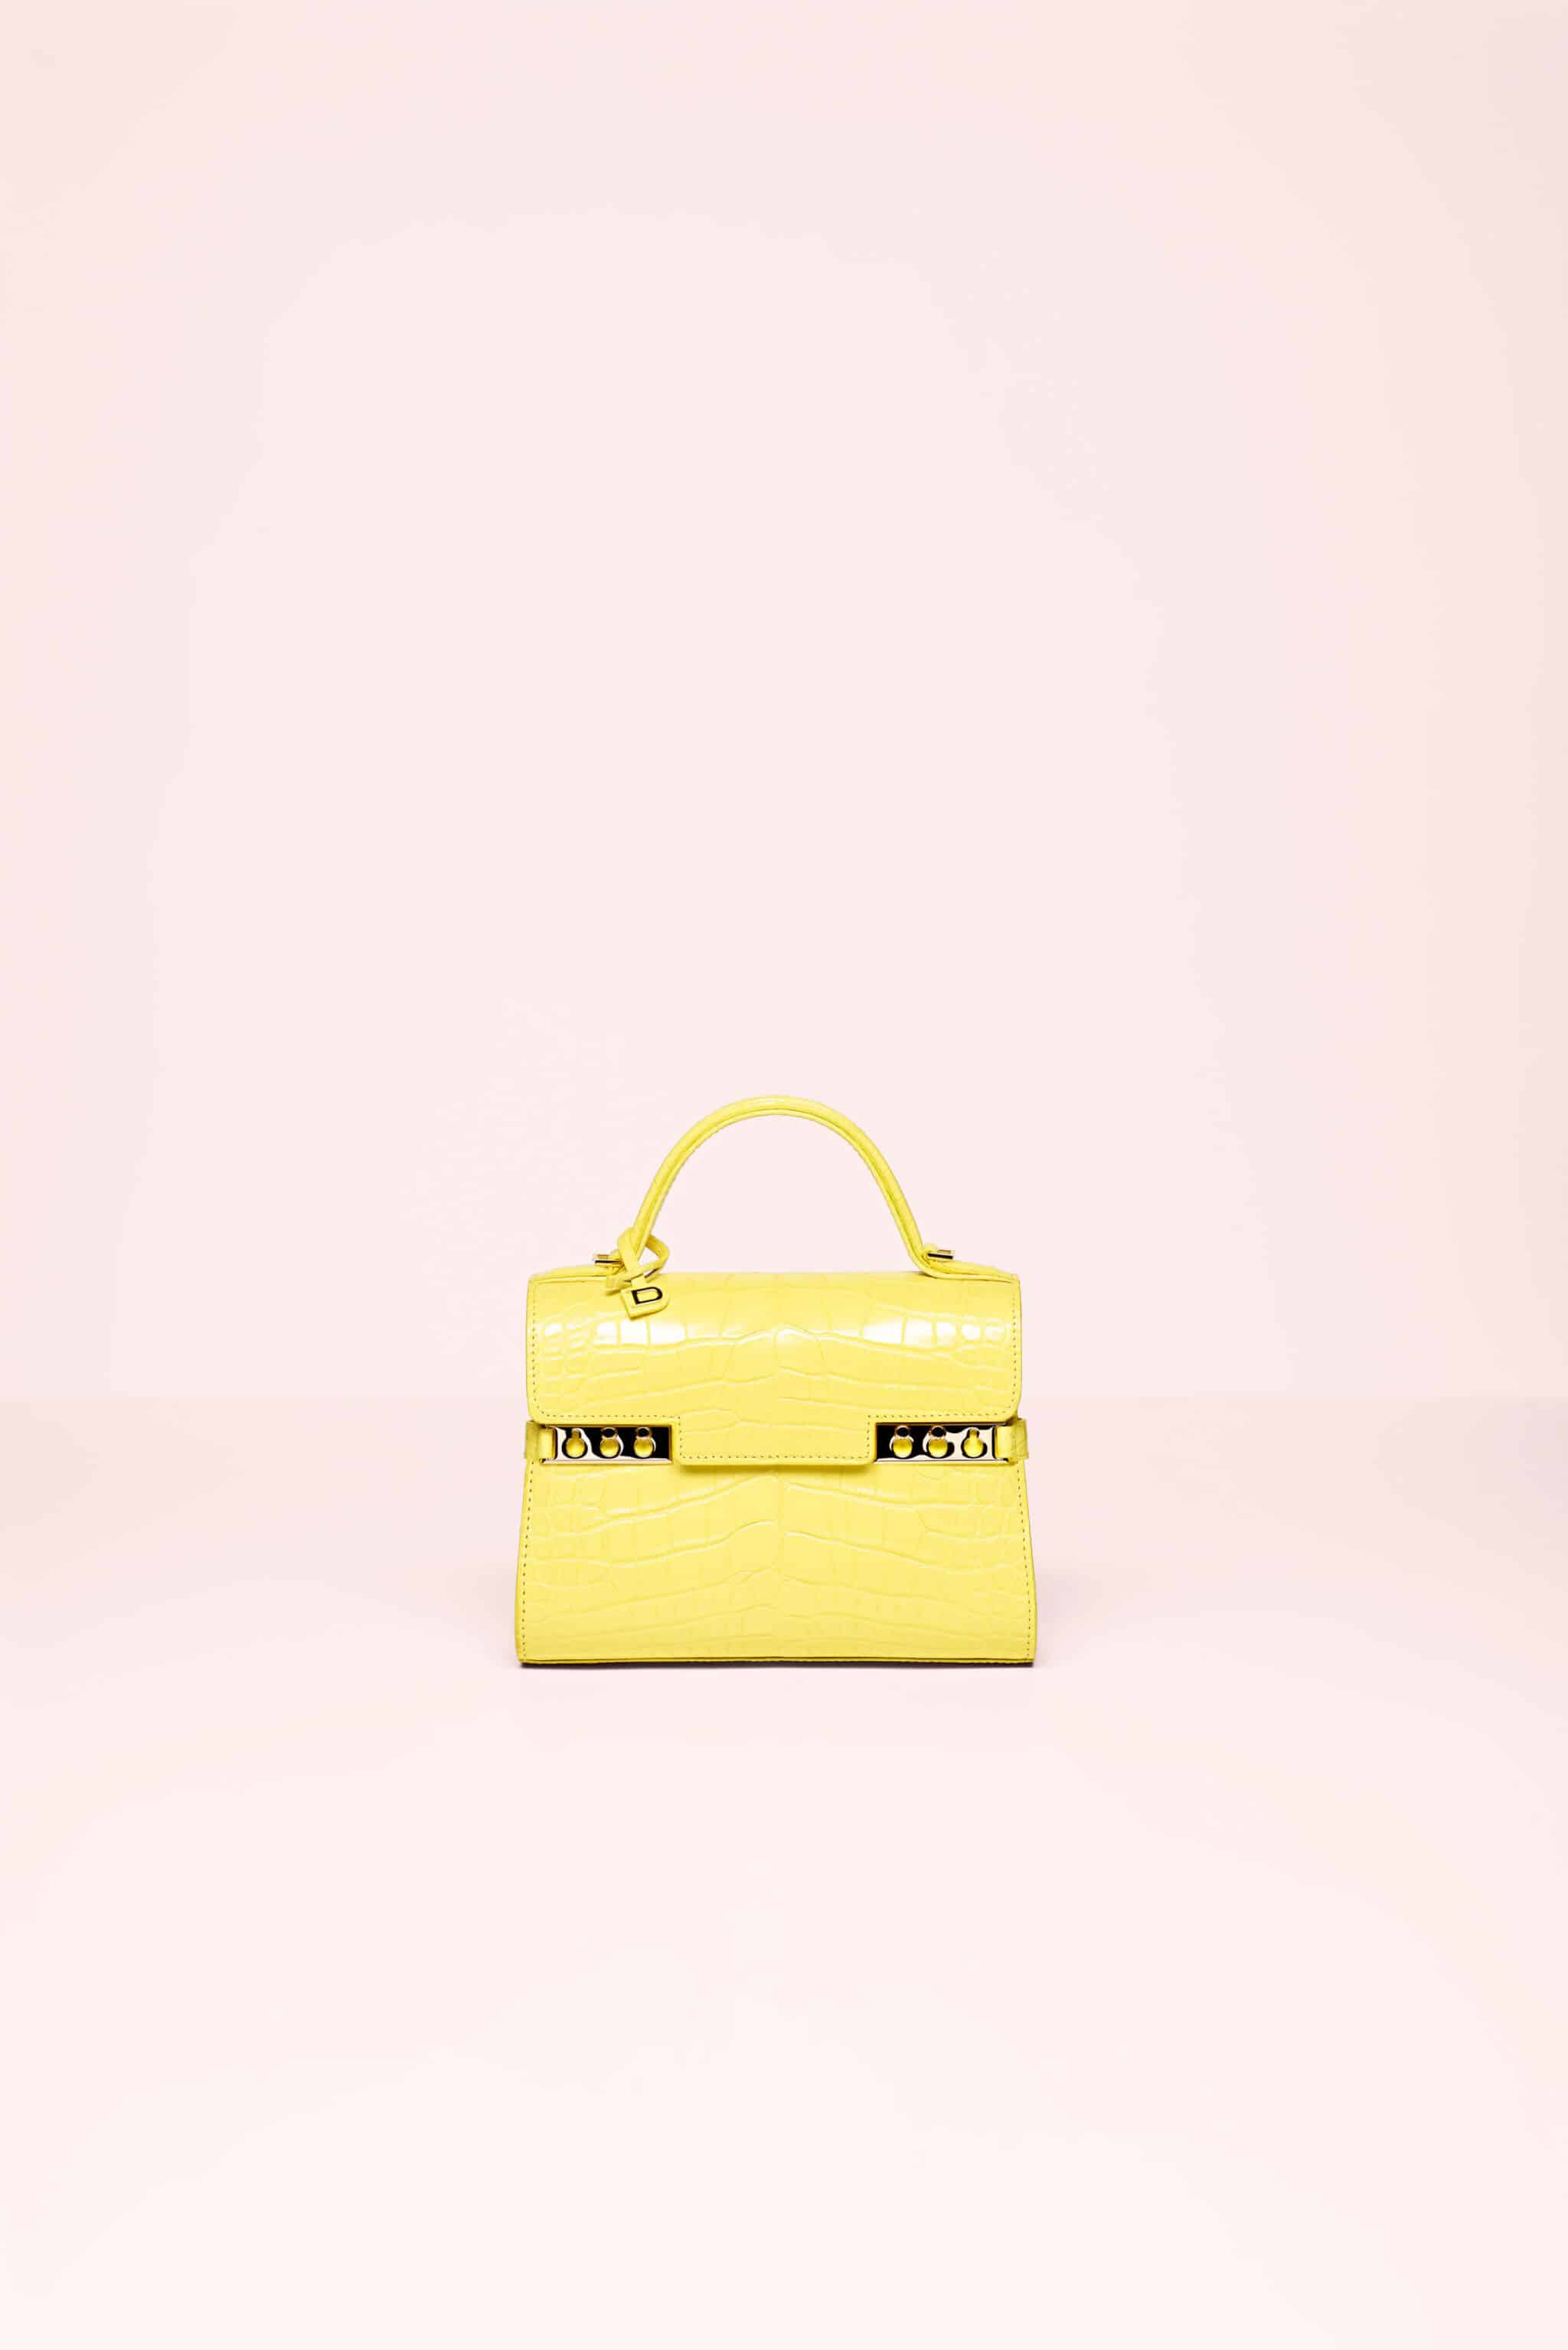 Delvaux Spring/Summer 2017 Bag Collection